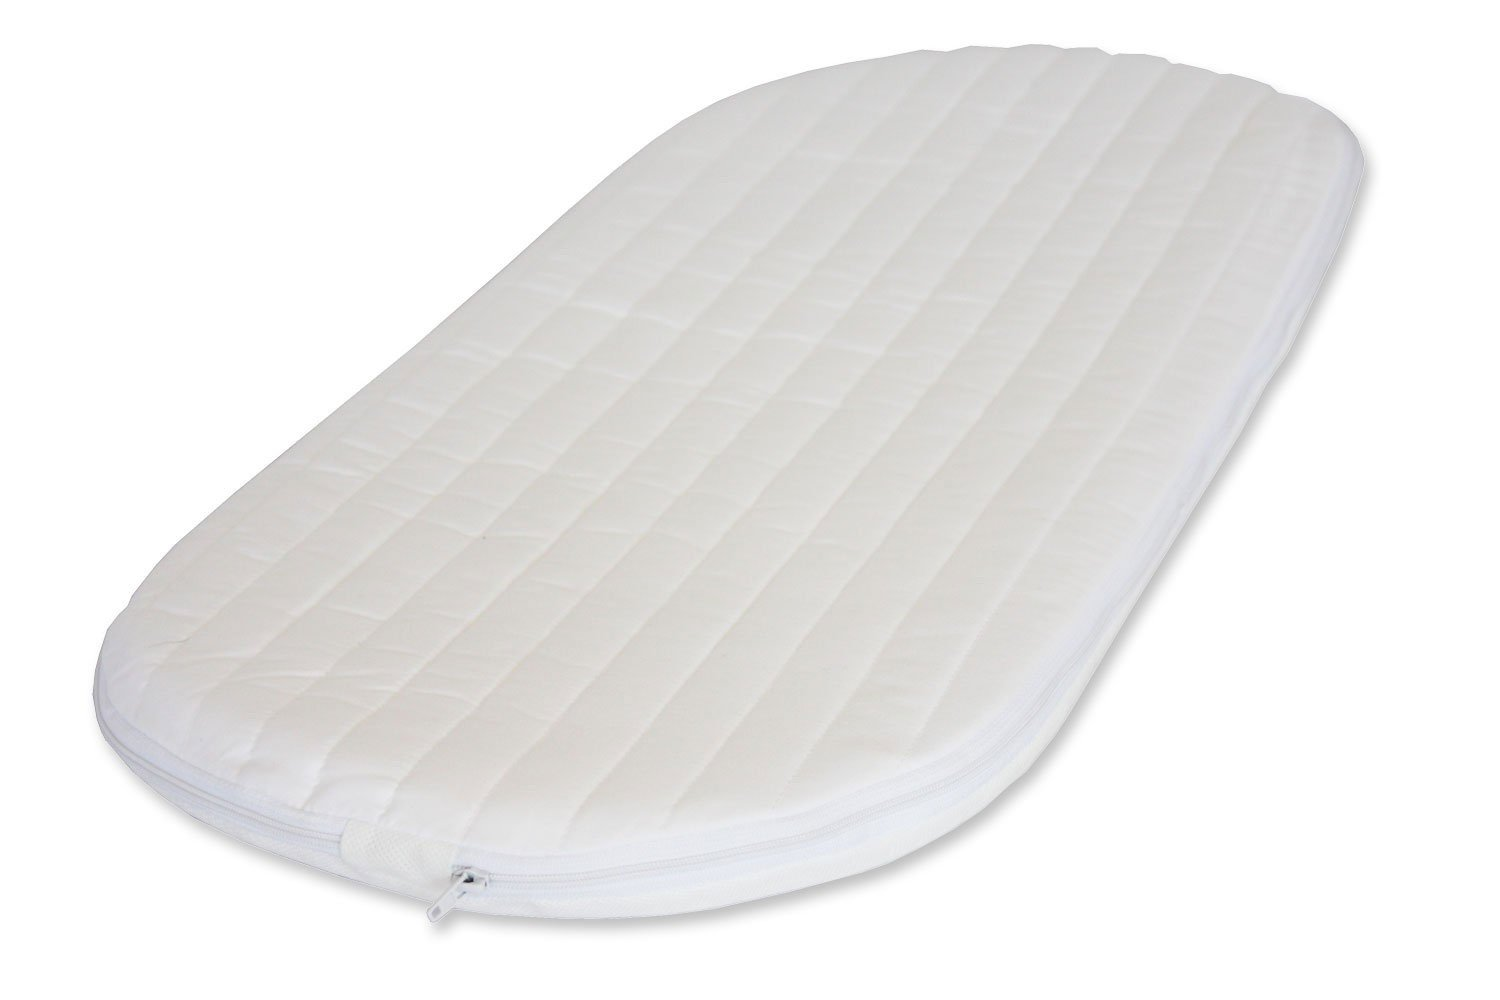 66 x 28 x 3.5 cm NightyNite Ambassador Moses Basket Mattress with Luxury Quilted Microfibre Cover NIghtyNite® AMB6628